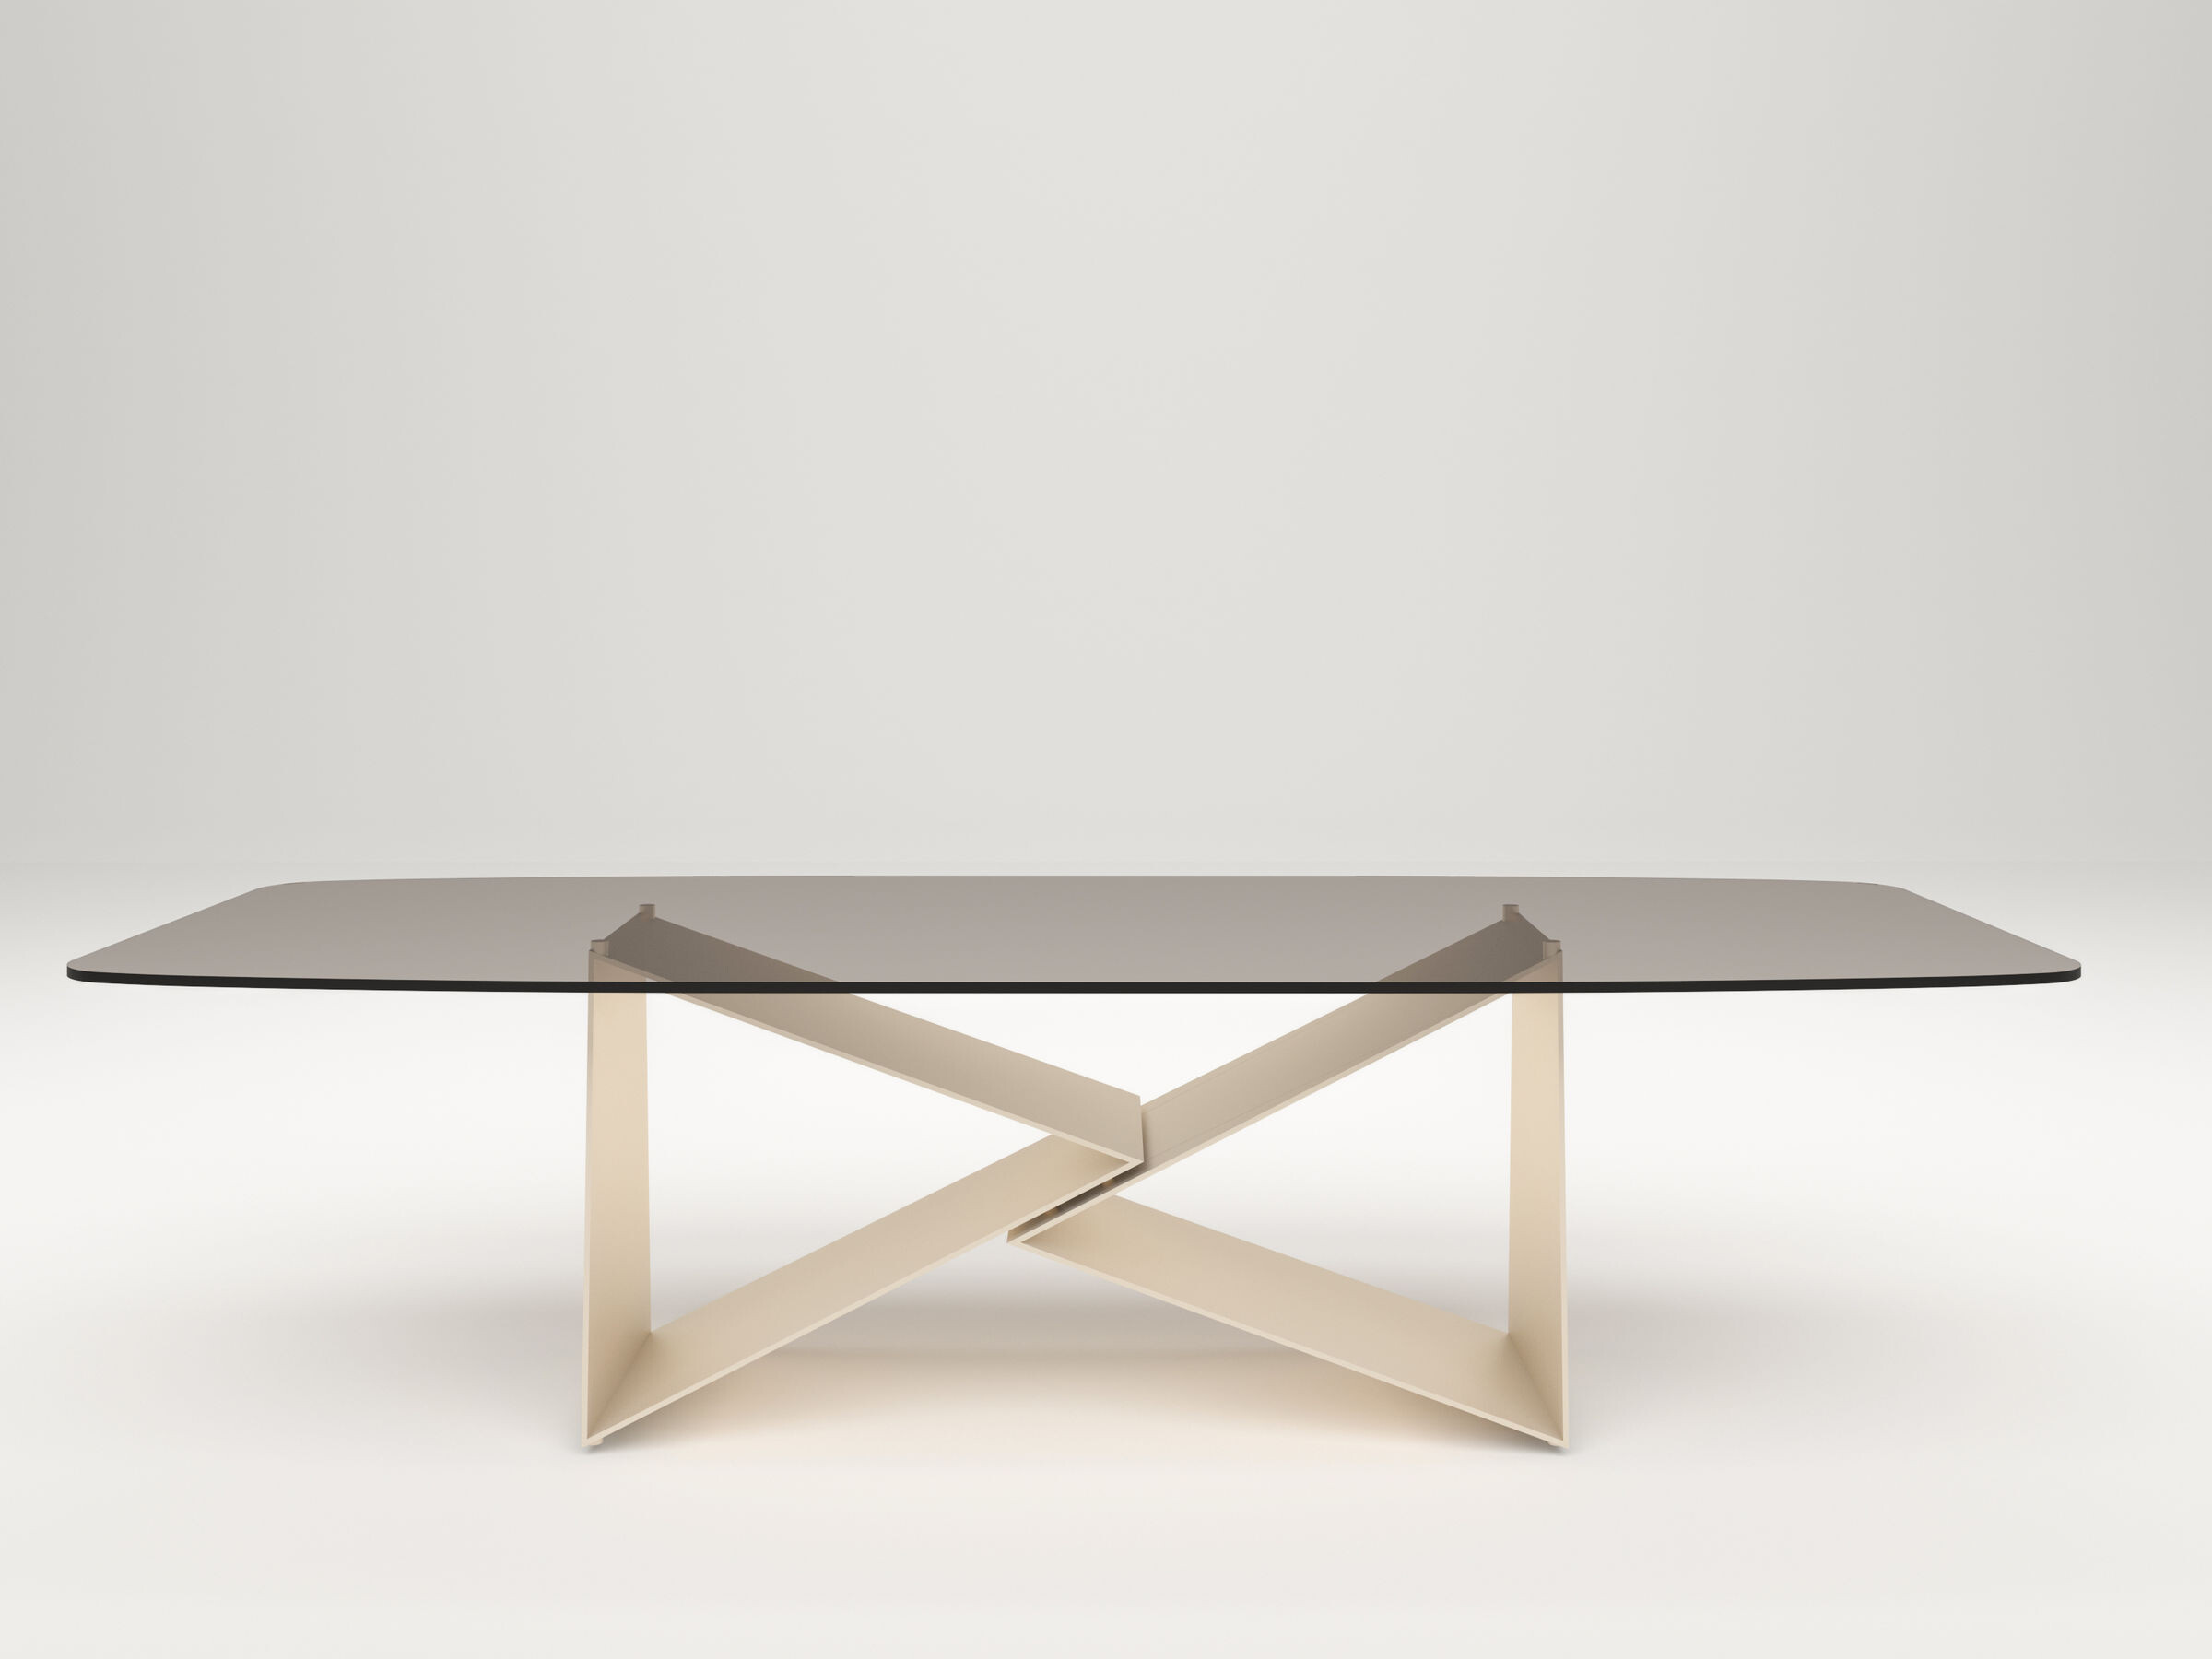 Eiger table